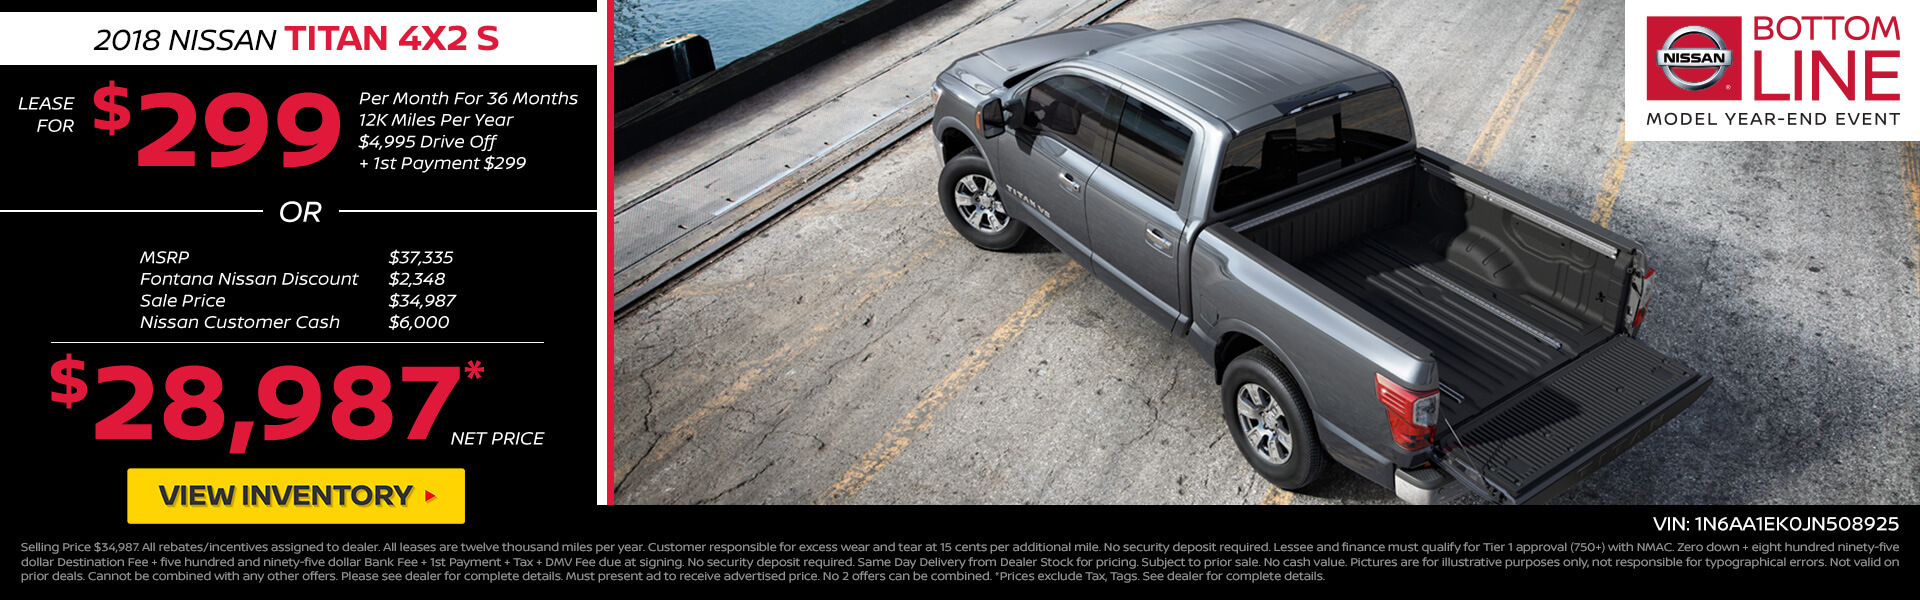 Nissan Titan $299 Lease or $28,987 Purchase